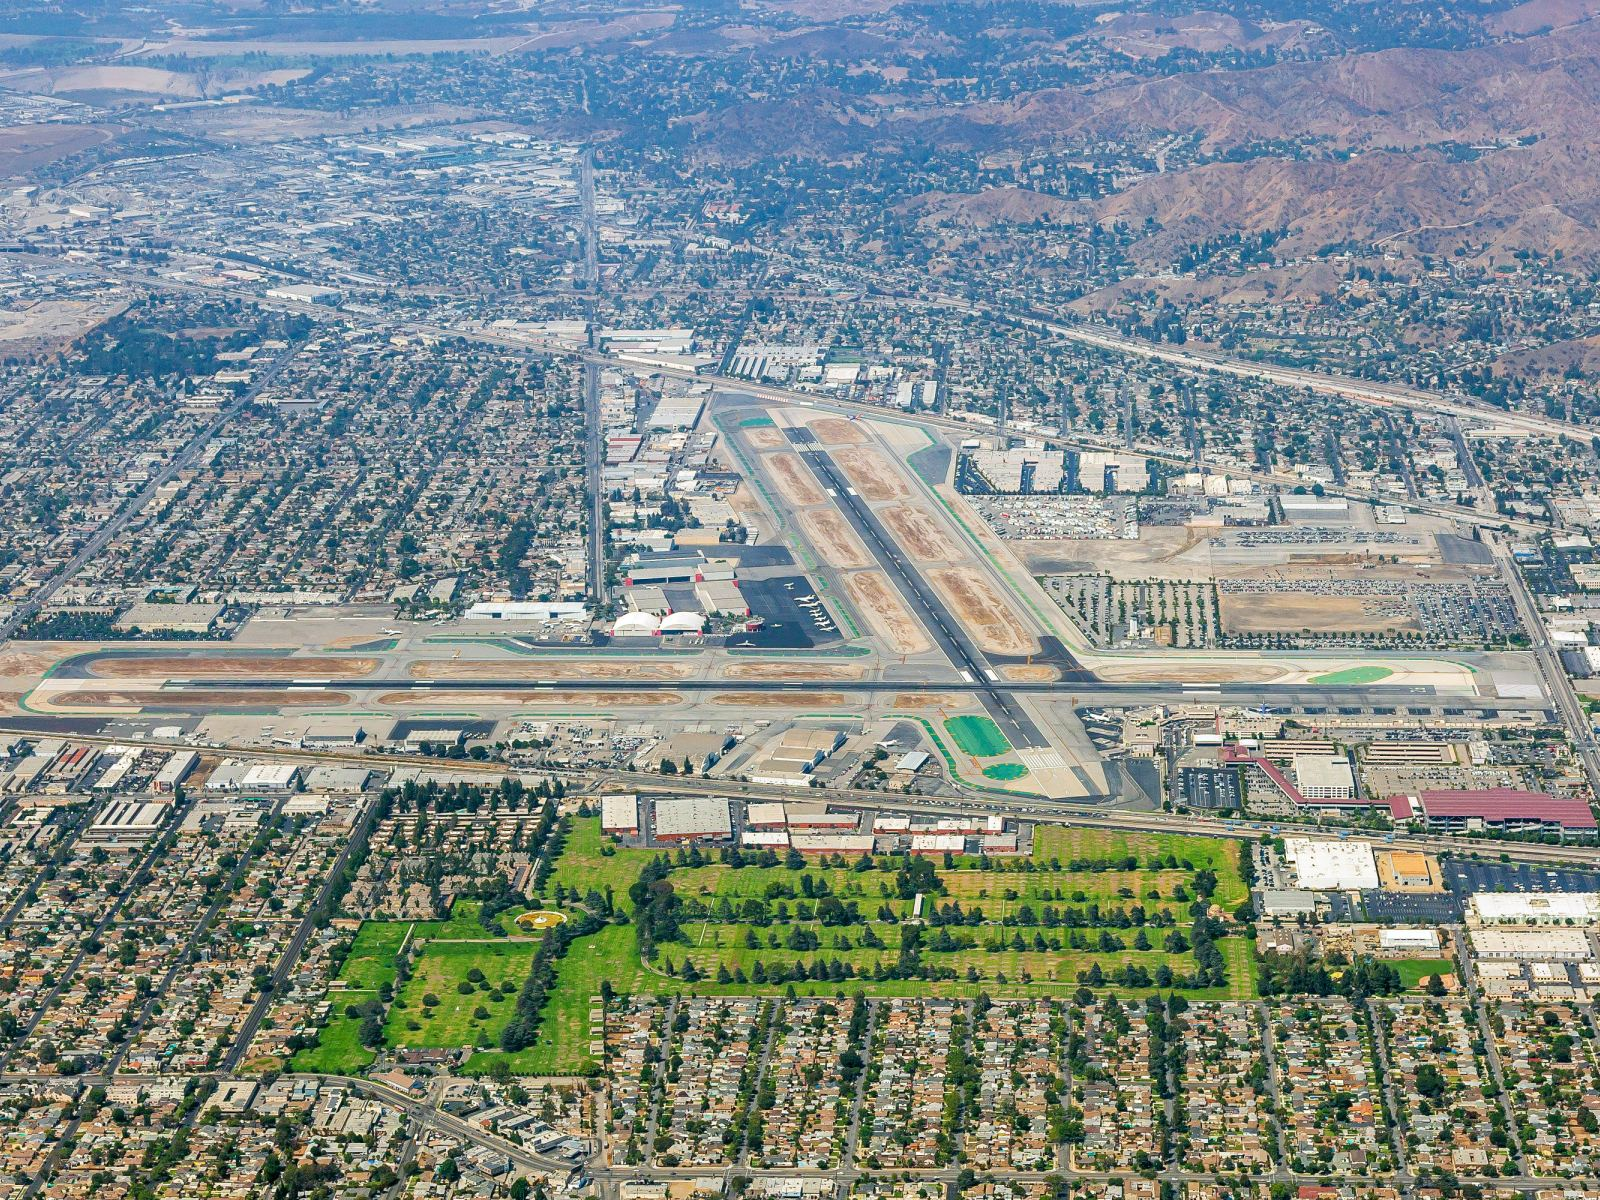 Hollywood Burbank Airport Aerial View